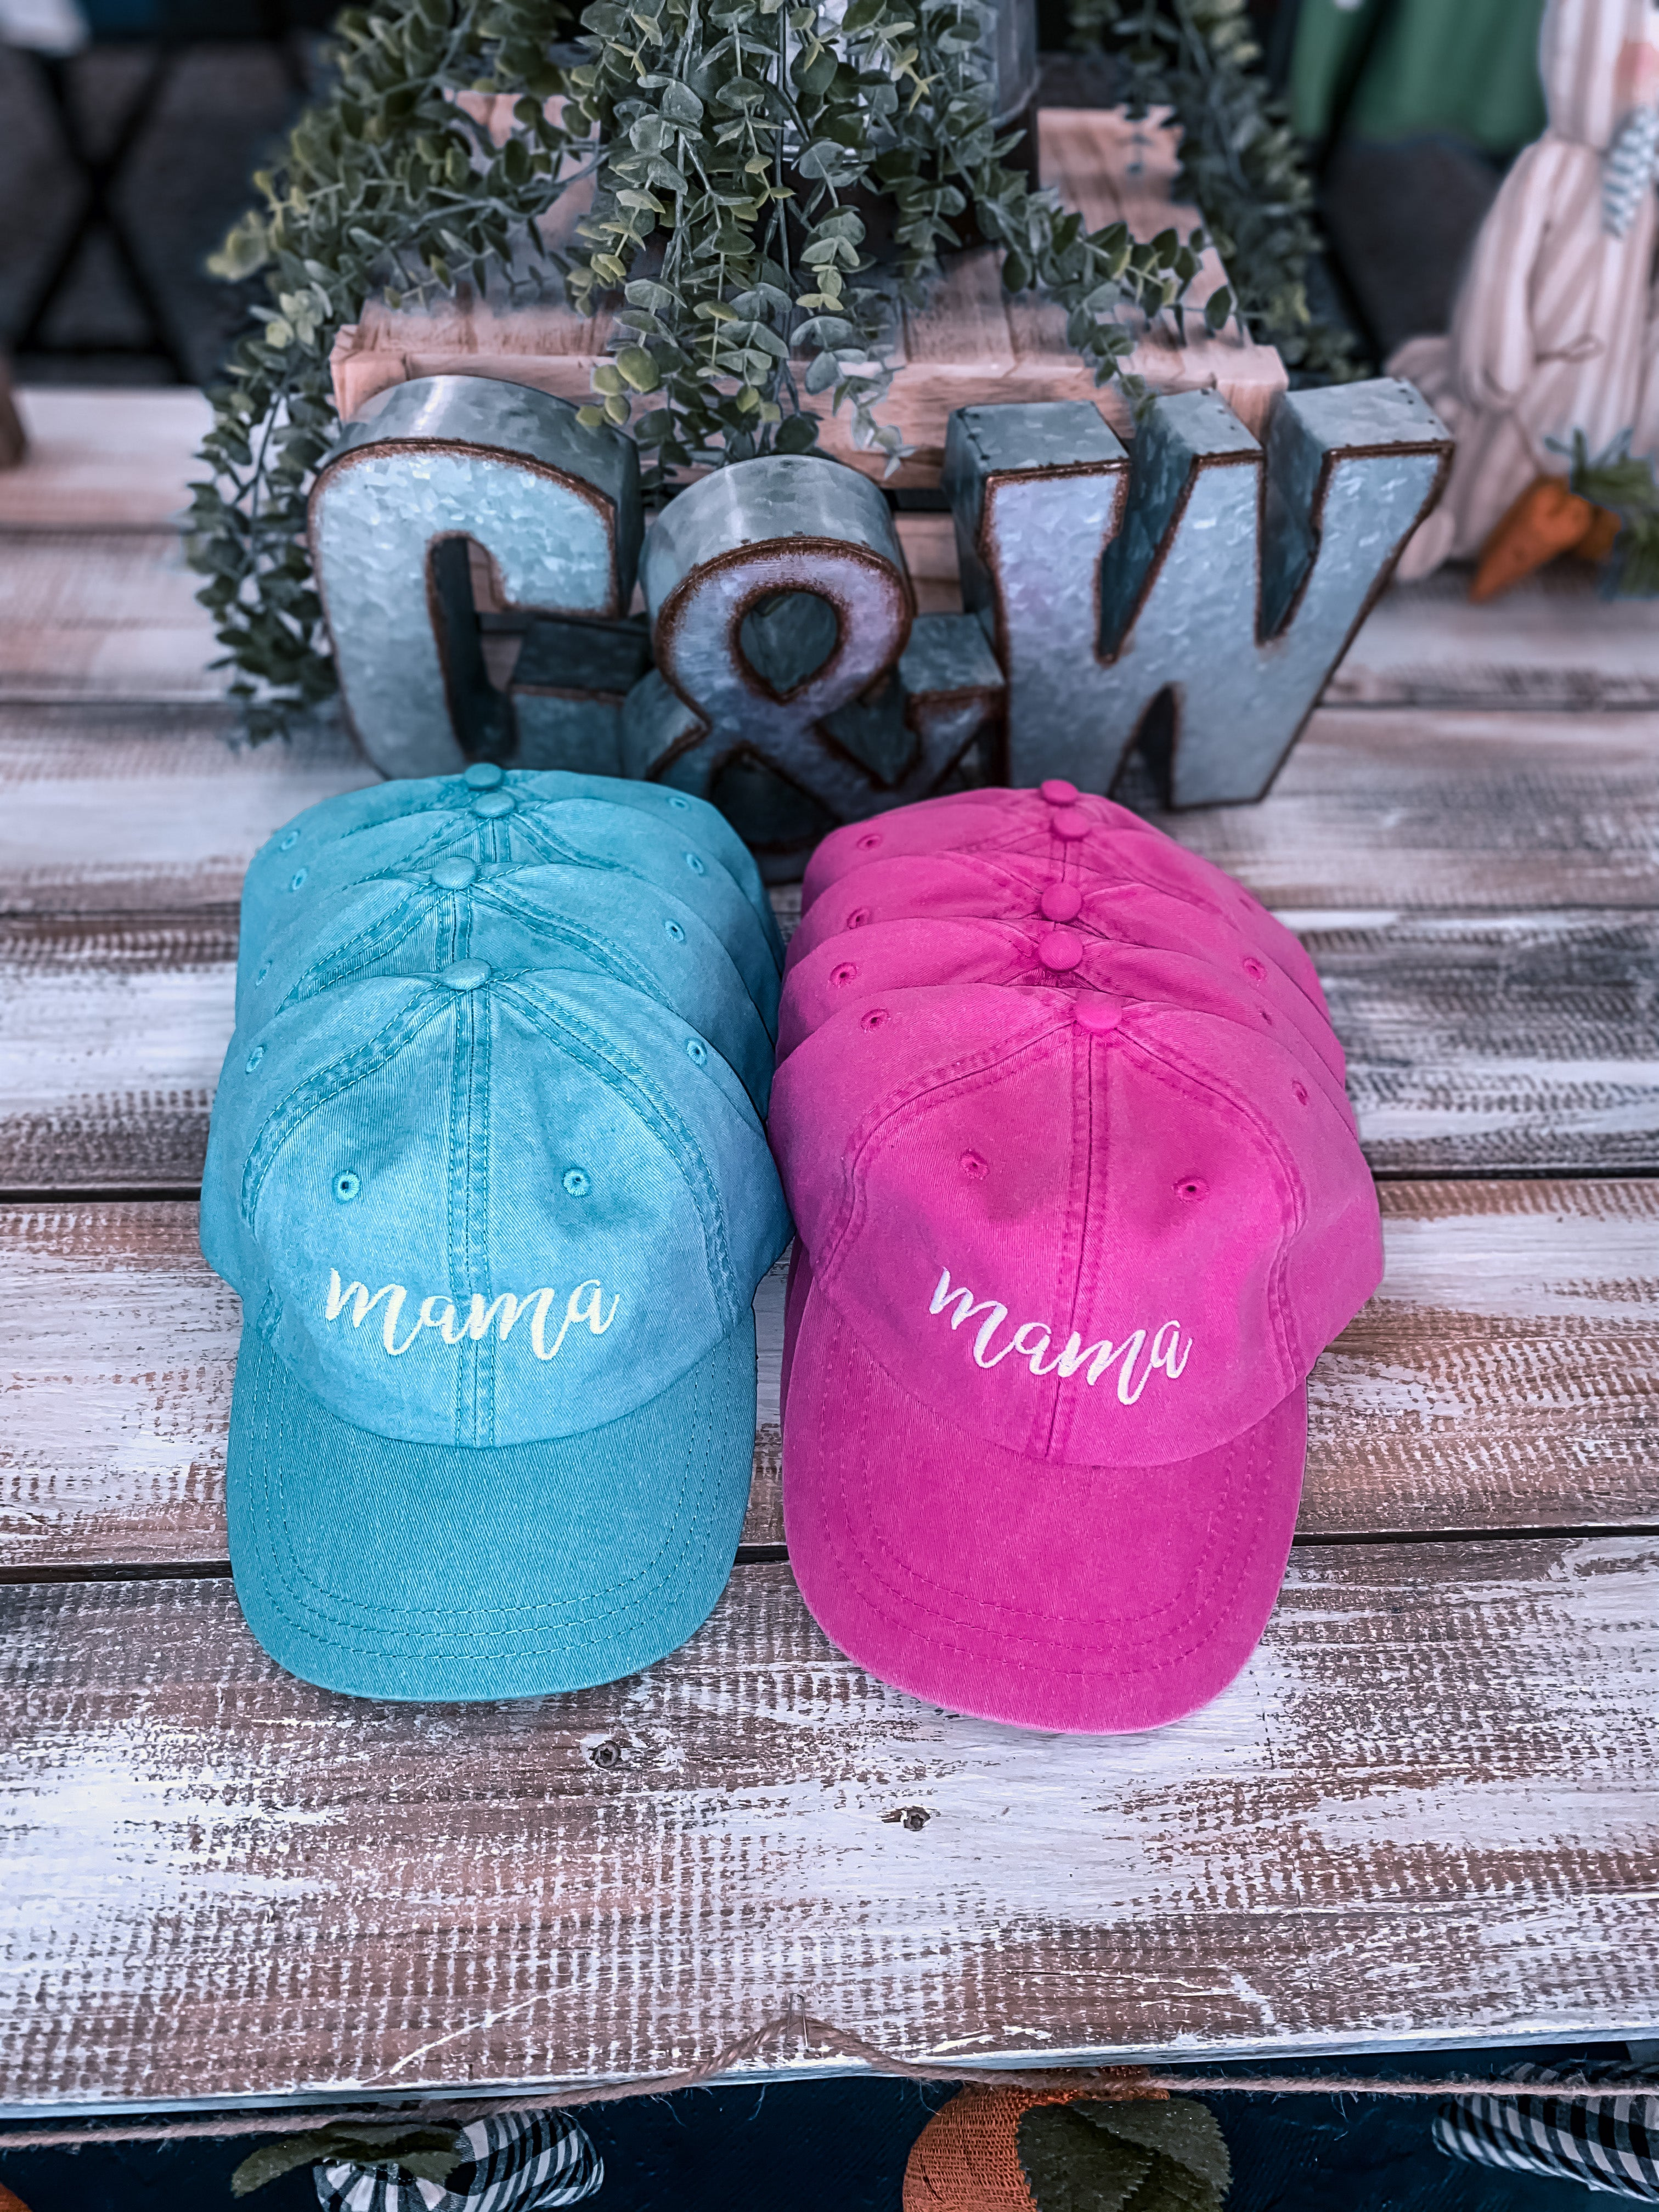 """Mama"" Embroidered Hats"